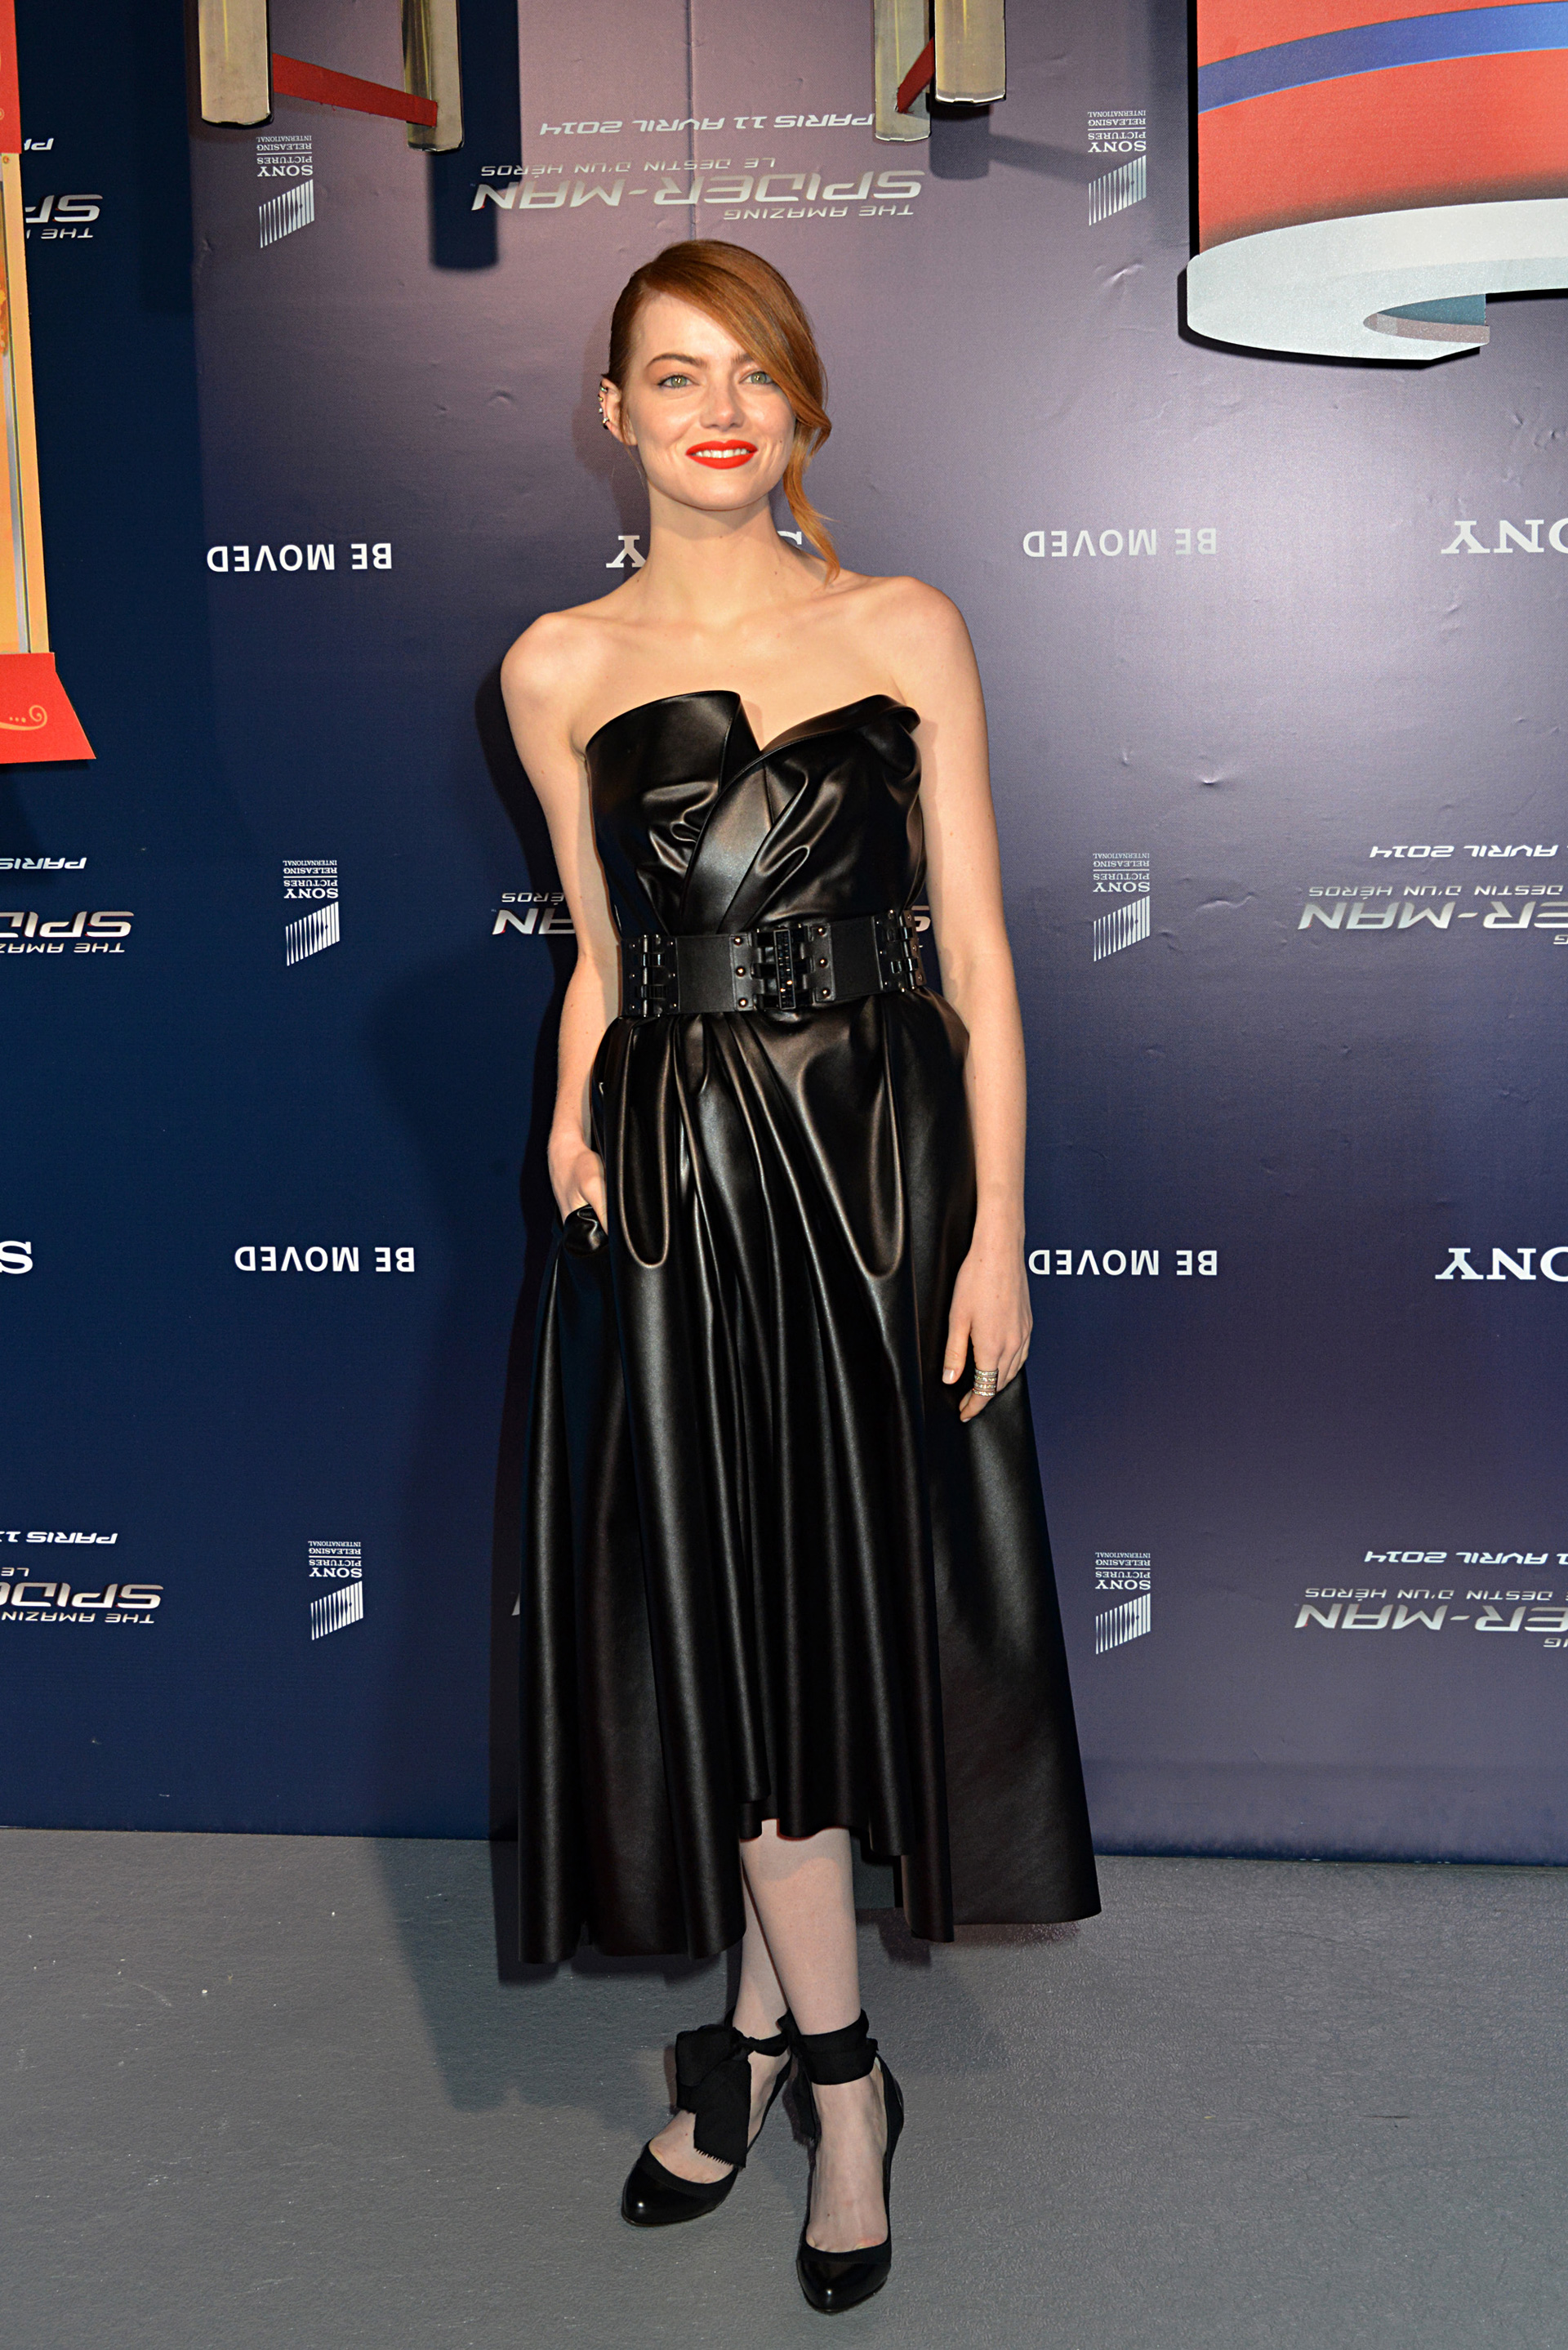 Emma Stone wearing a black leather dress